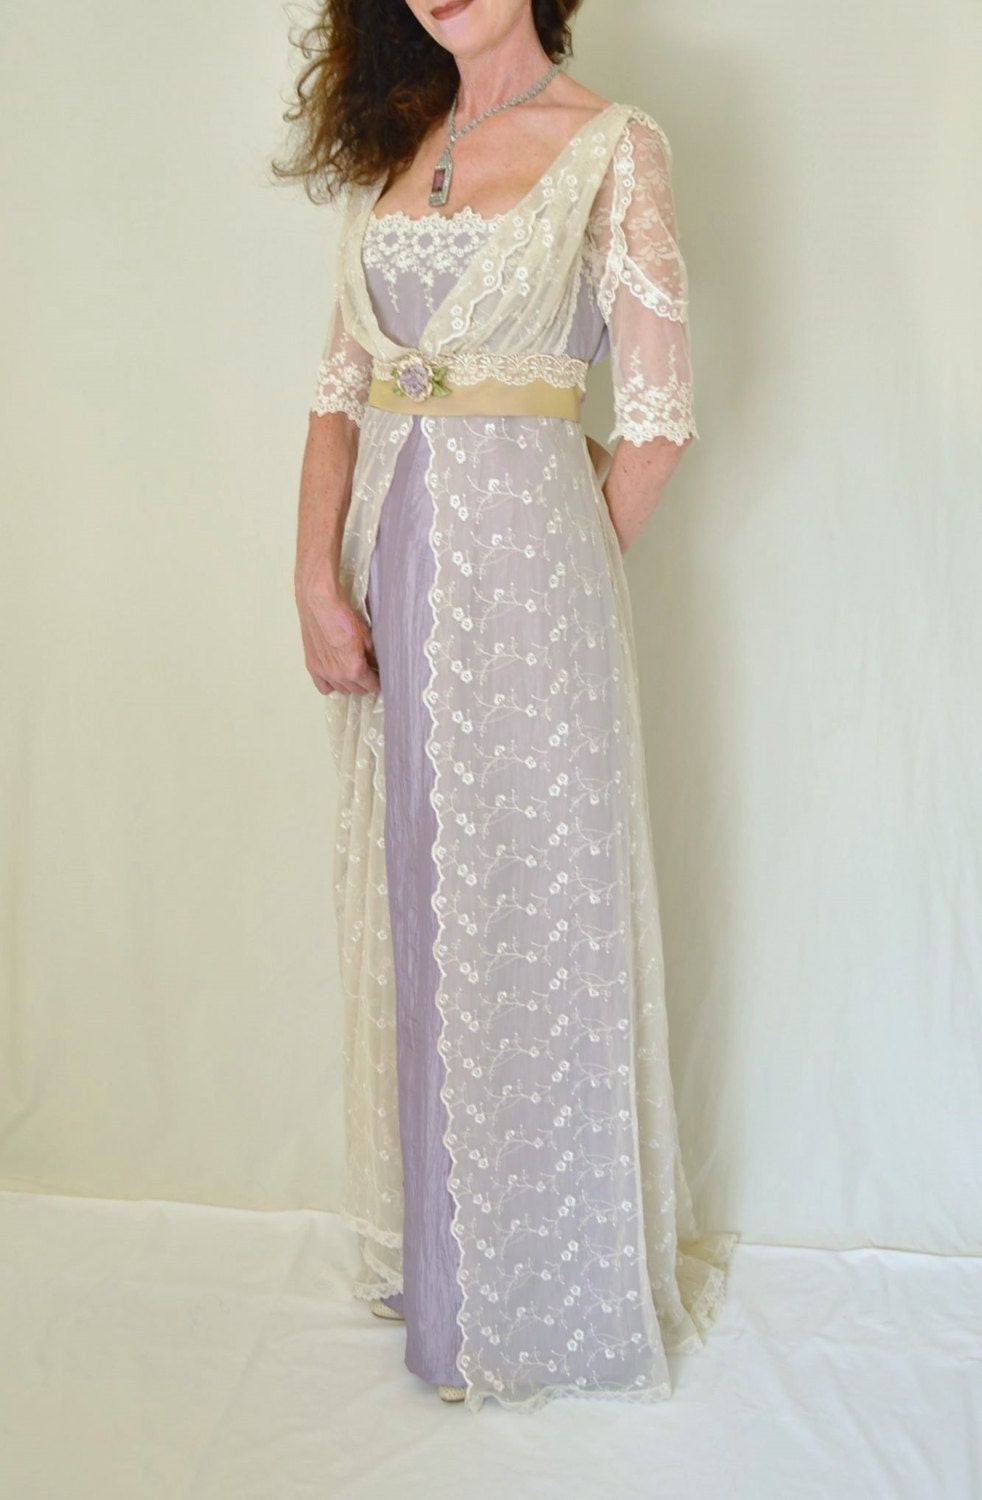 1900 Edwardian Dresses, Tea Party Dresses, White Lace Dresses Lace Wedding Dress Edwardian Downton Abbey Titanic Antique Style Lilac and Lace Gown Also Available For Custom Orders In Your Size! $850.00 AT vintagedancer.com